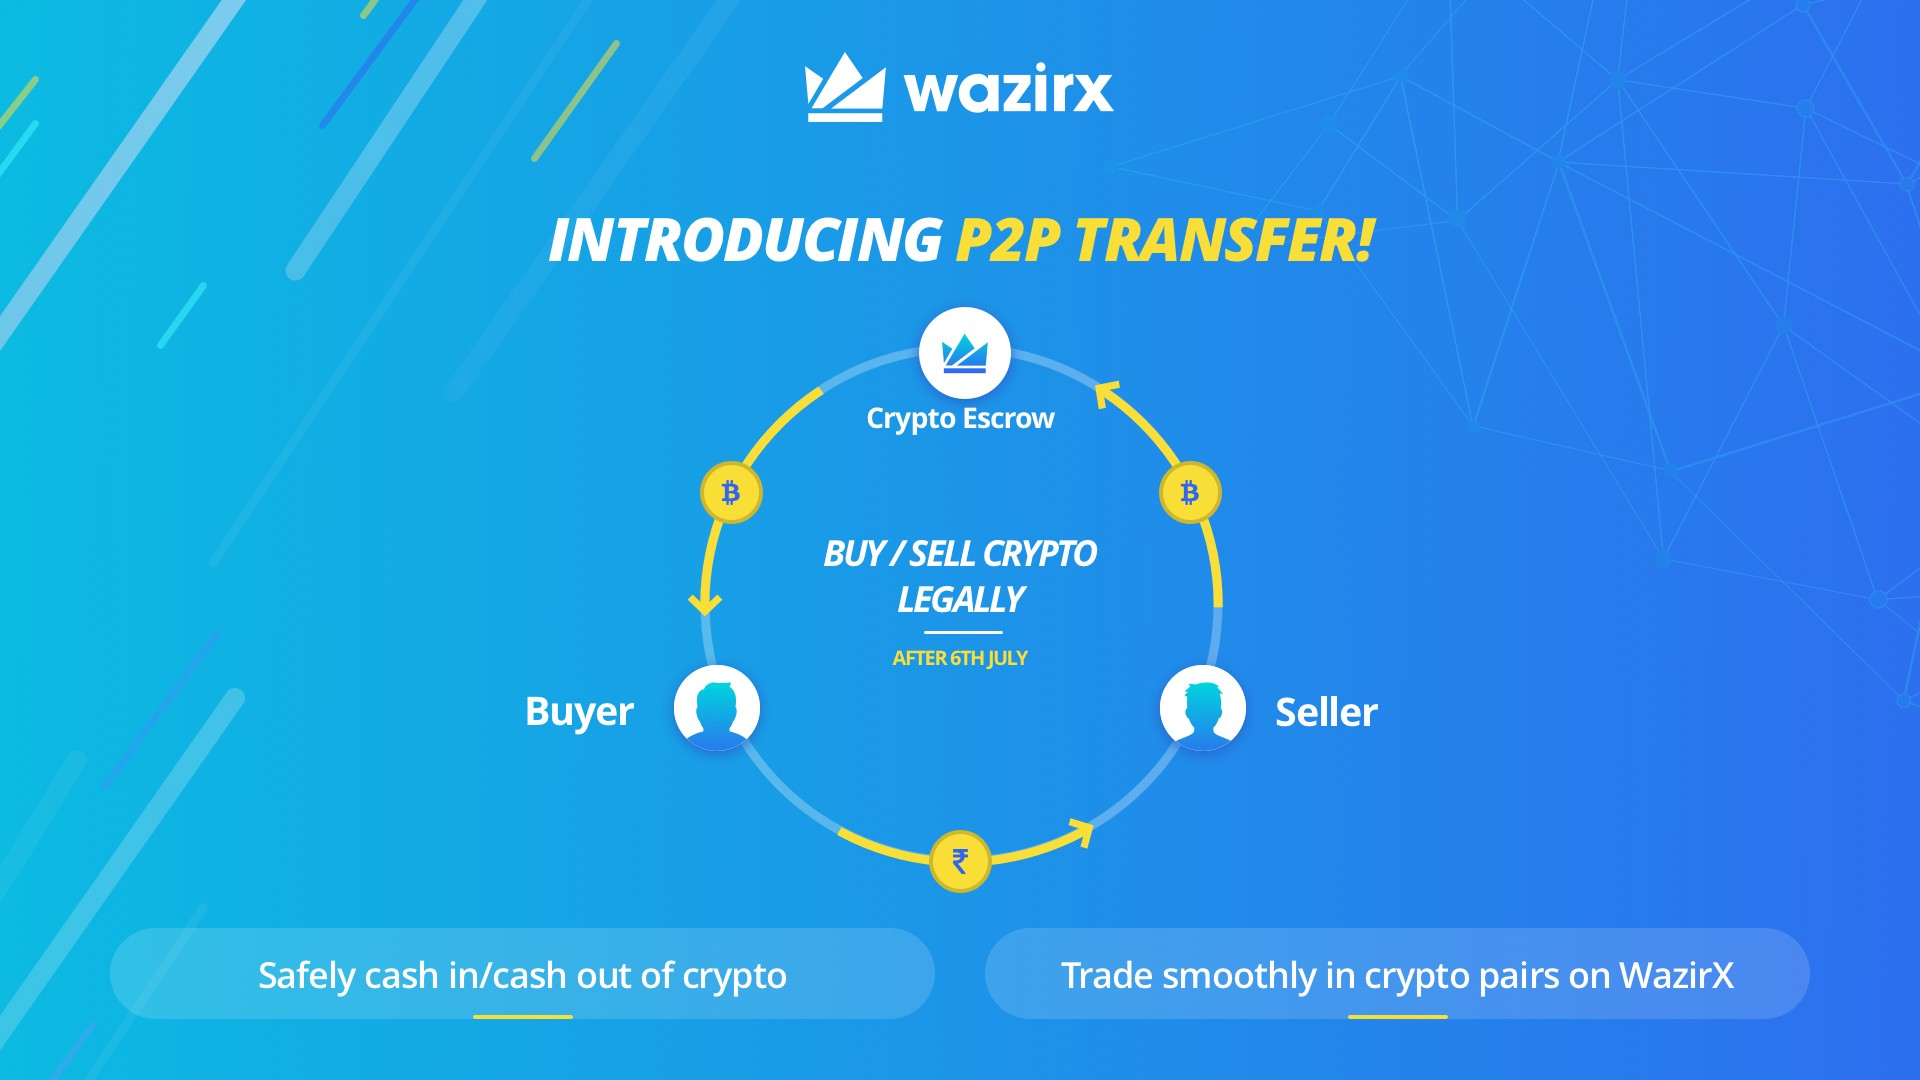 Revealing The Most Legal Way To Buy Sell Cryptos In India After Wiring Money Escrow Account With 6th July Deadline Closing Of You Have Been Asking Us About Fate Crypto Weve Working On A Solution Help